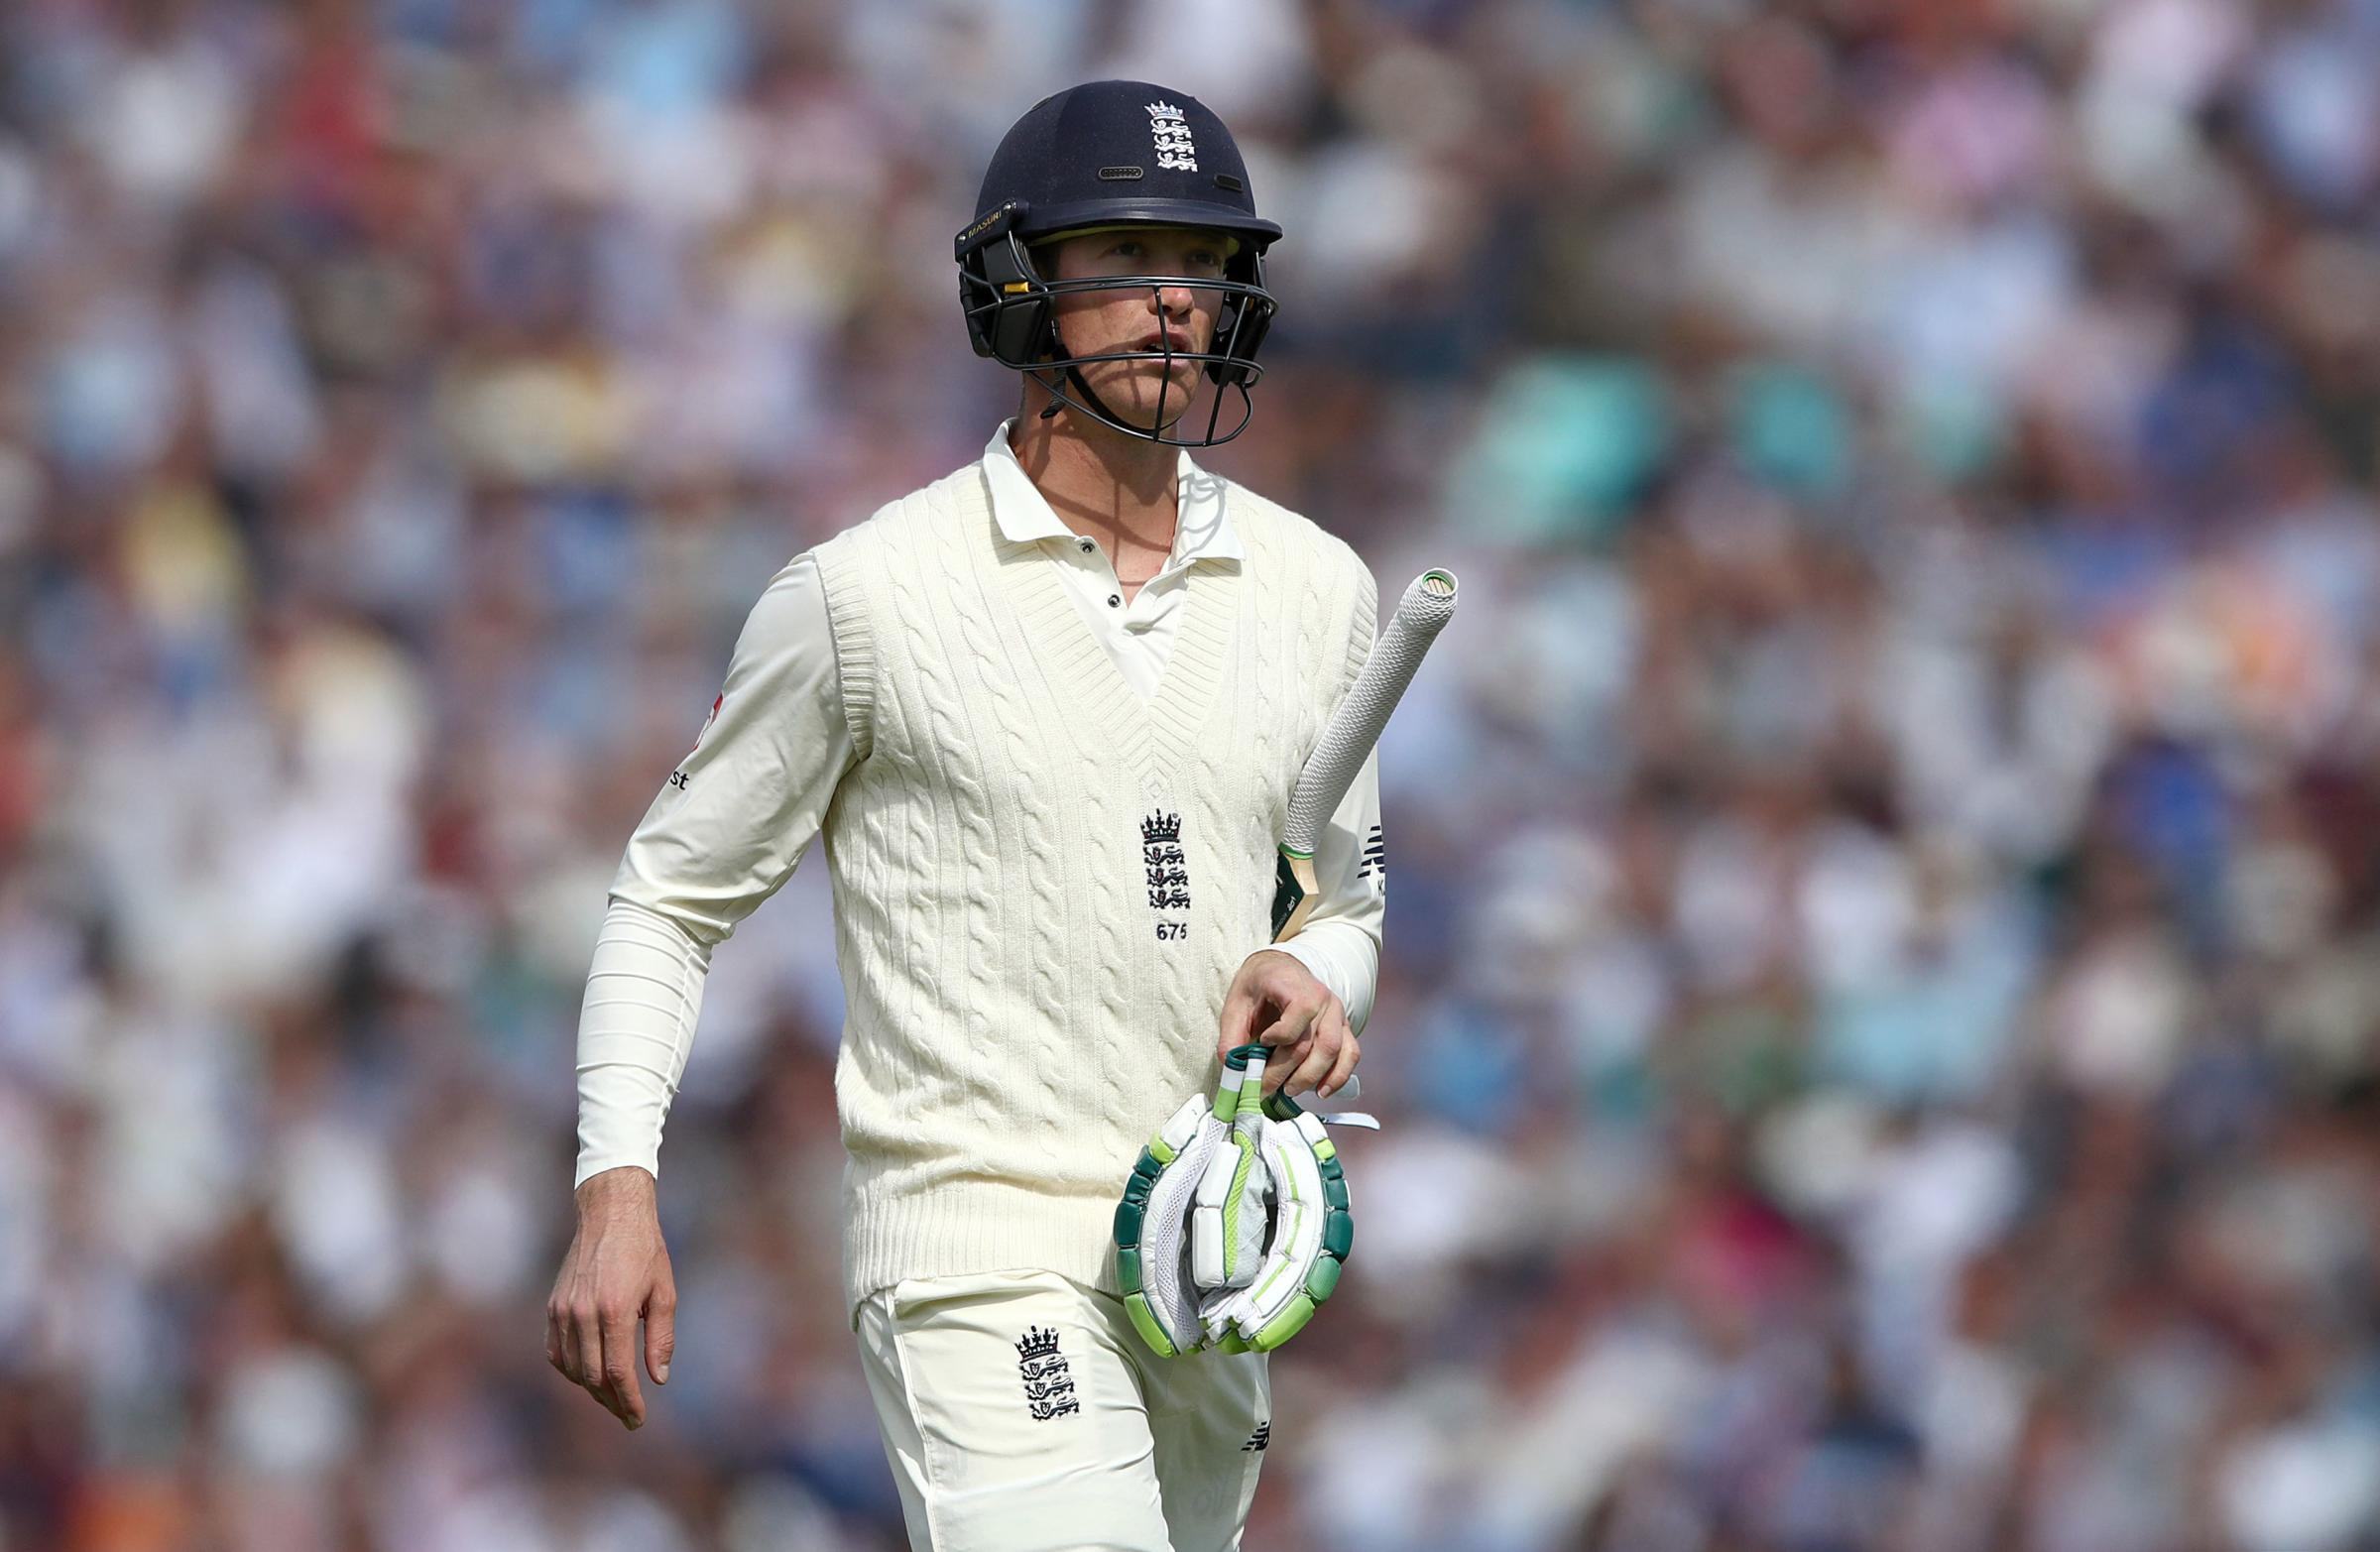 England's Keaton Jennings leaves the field after being caught by India's Lokesh Rahul during the test match at The Kia Oval, London. PRESS ASSOCIATION Photo. Picture date: Friday September 7, 2018. See PA story CRICKET England. Photo